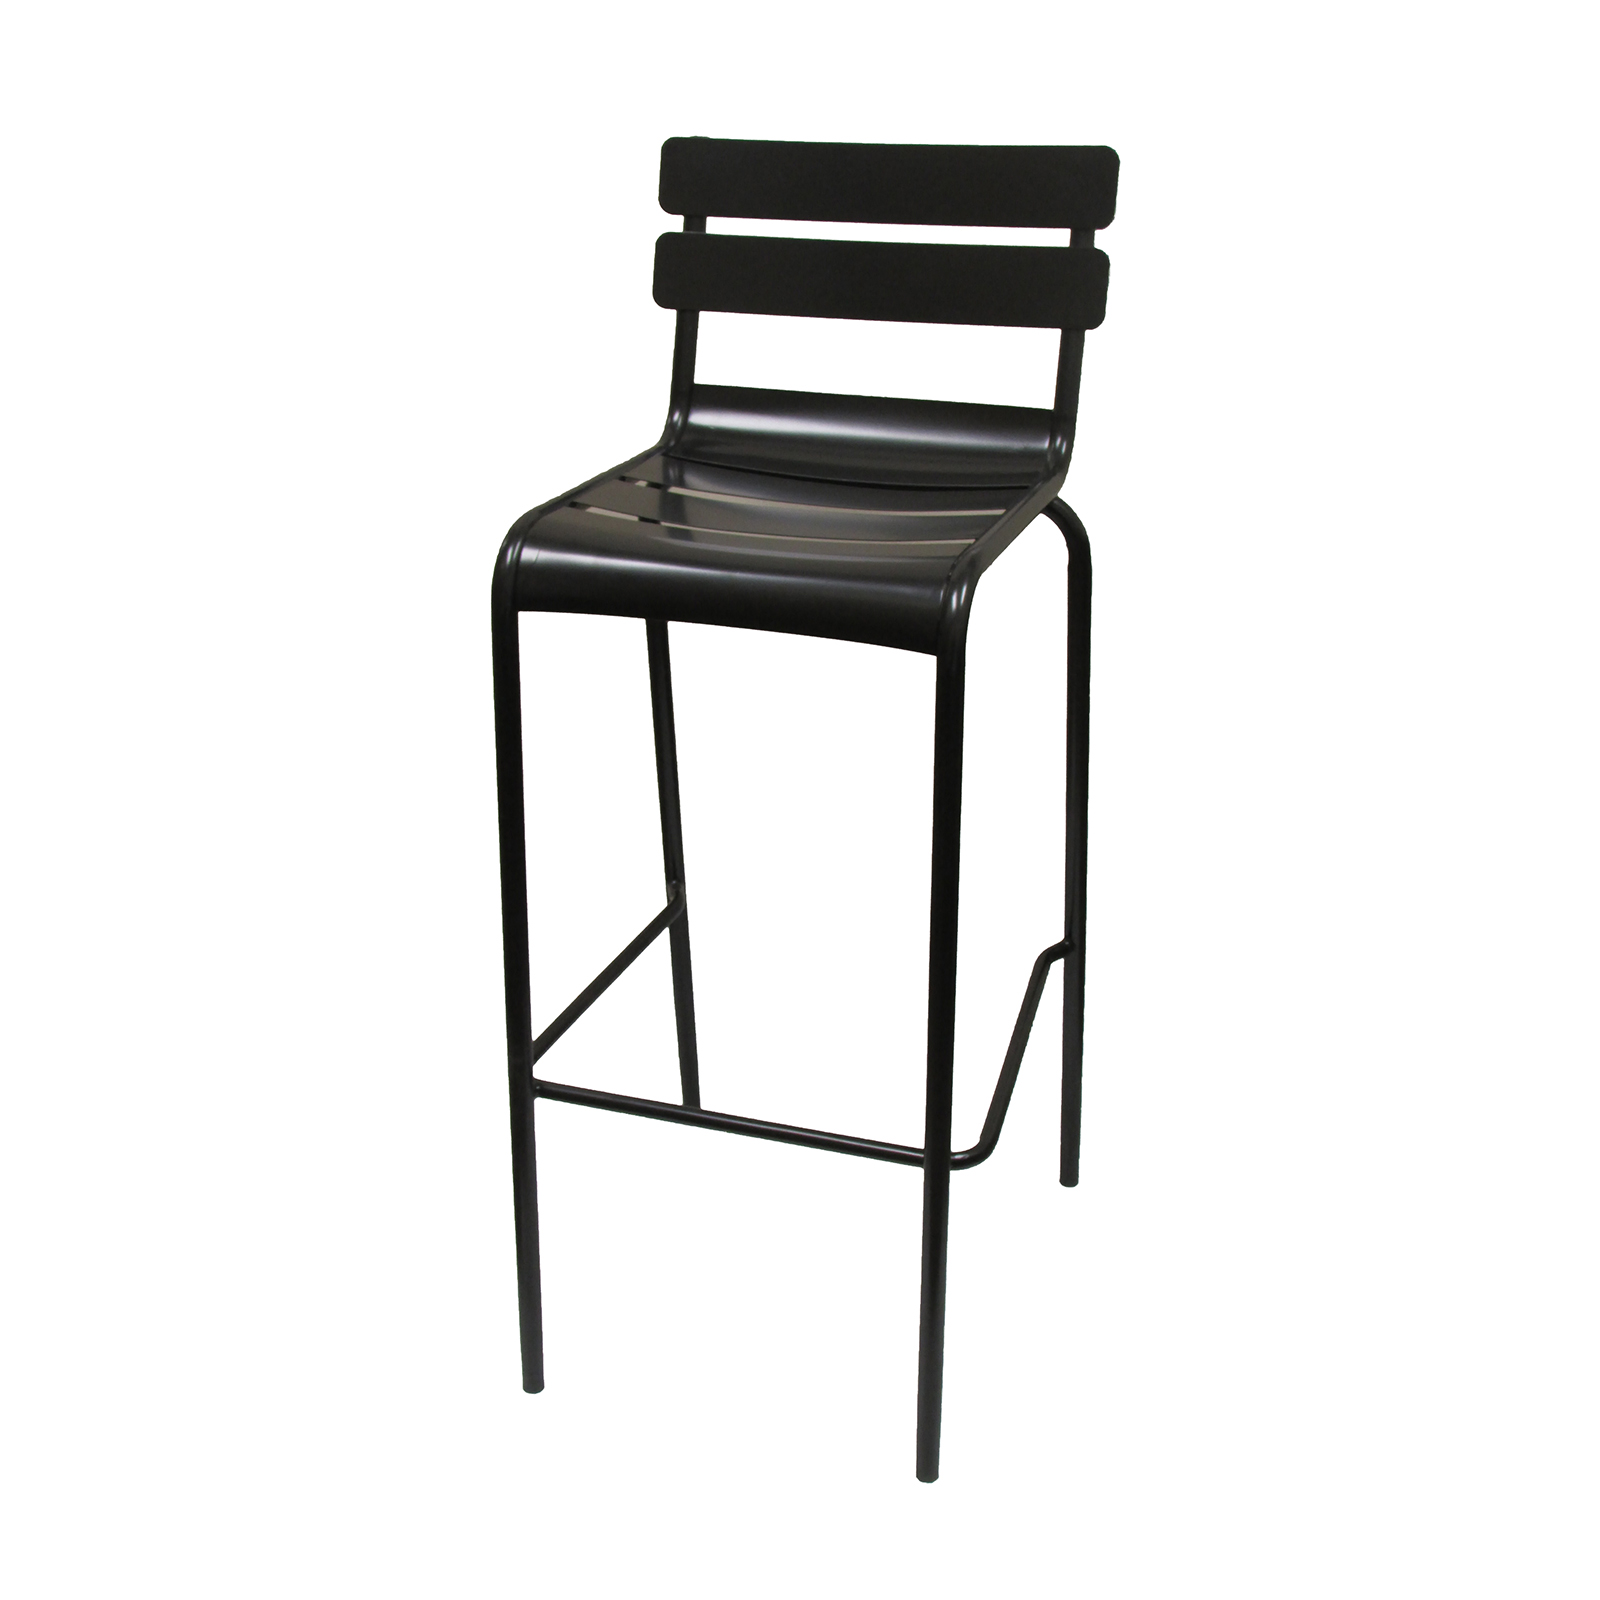 Oak Street BM-824 bar stool, outdoor